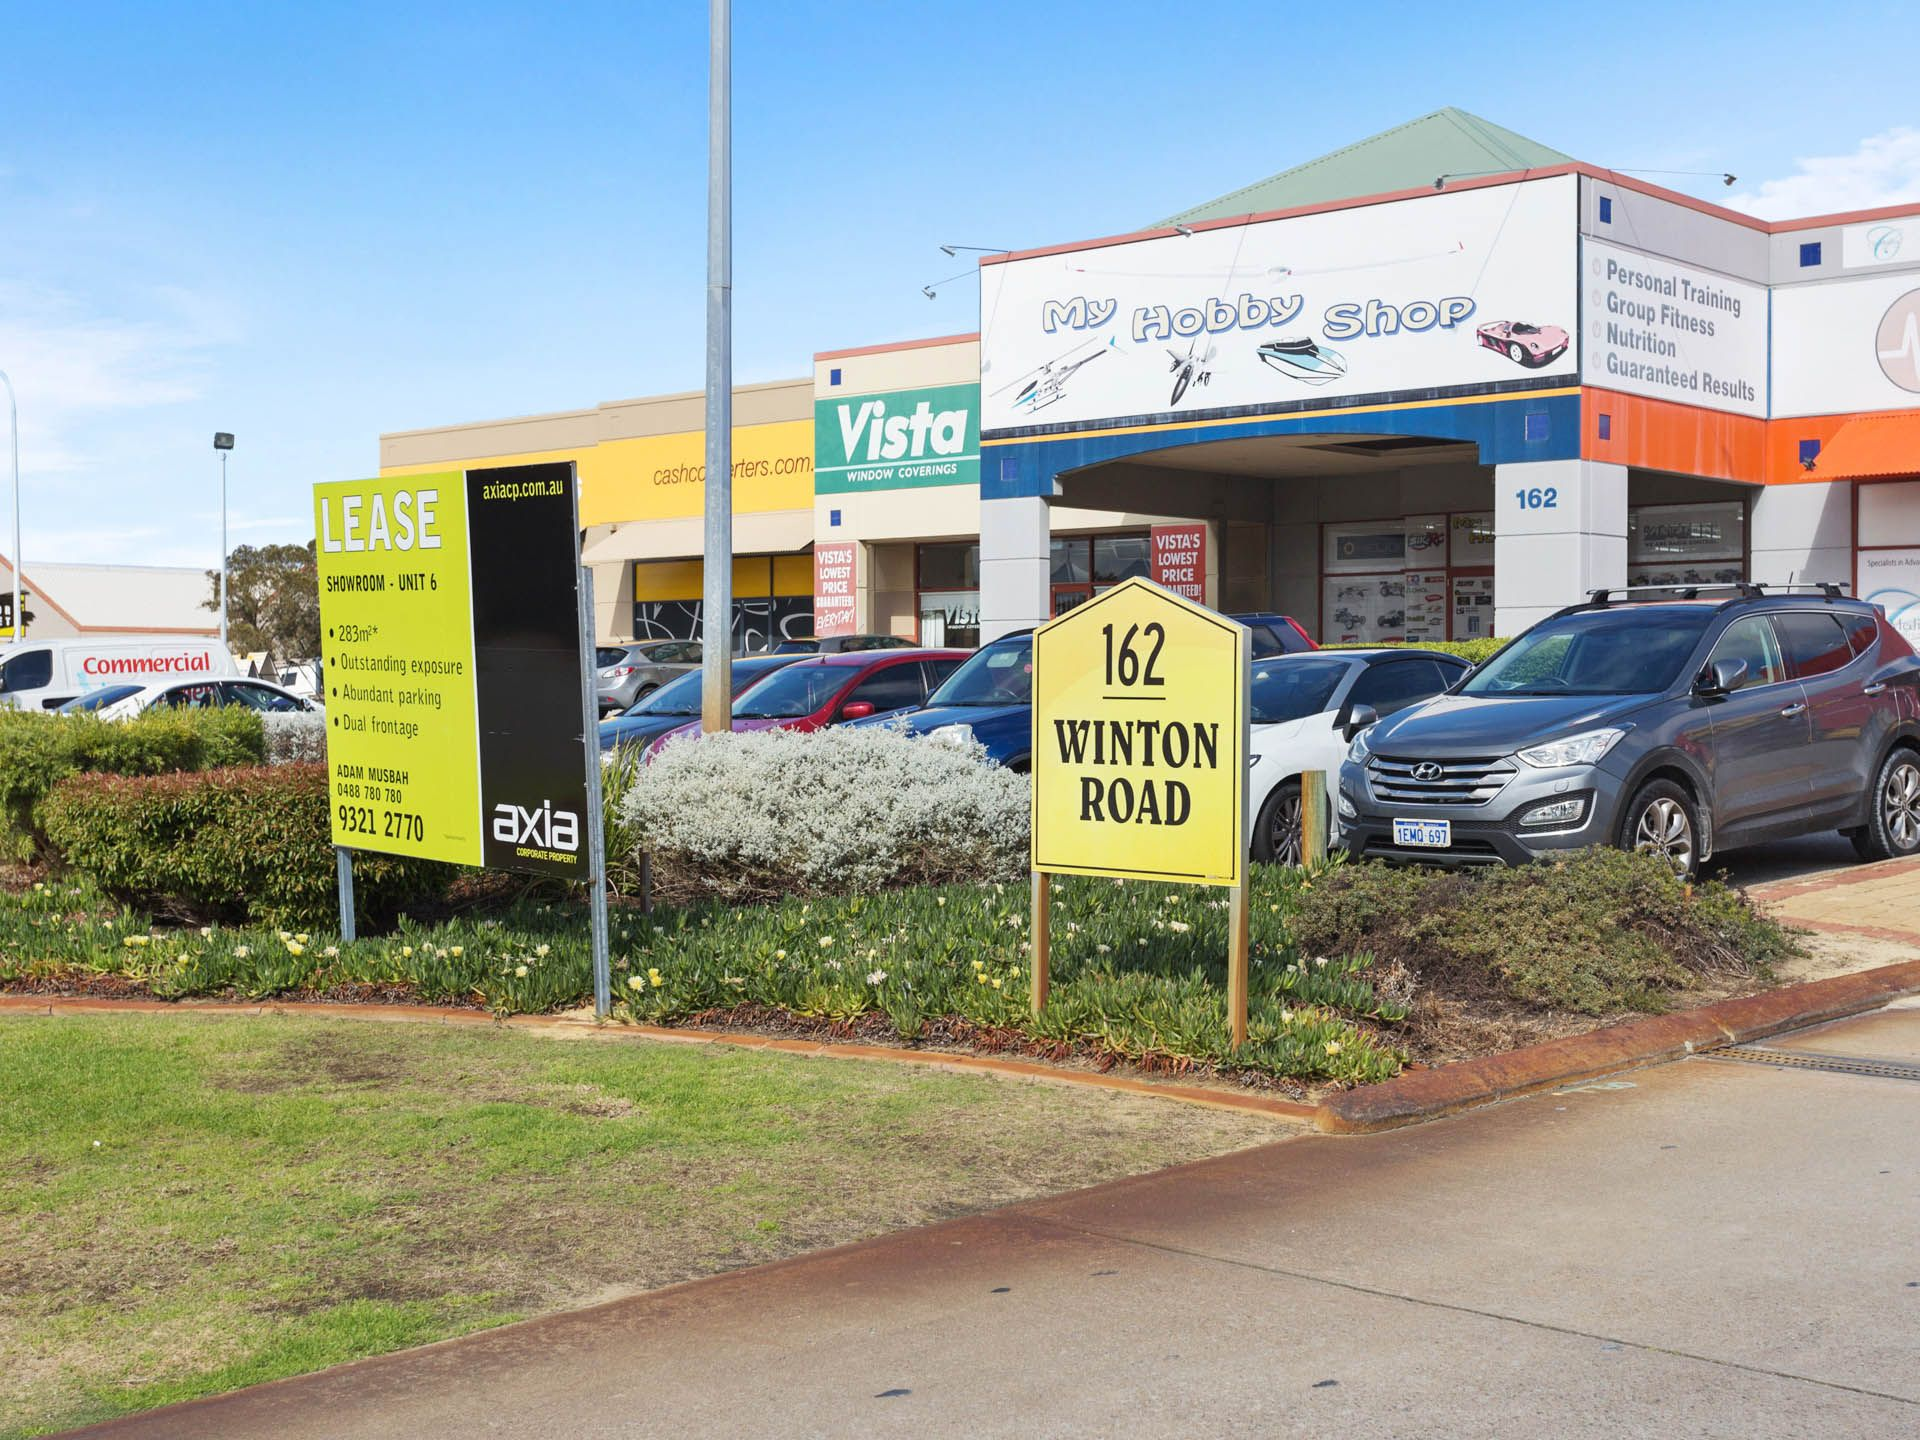 JOONDALUP BUSINESS PARK - MOST PROMINENT SHOWROOM?